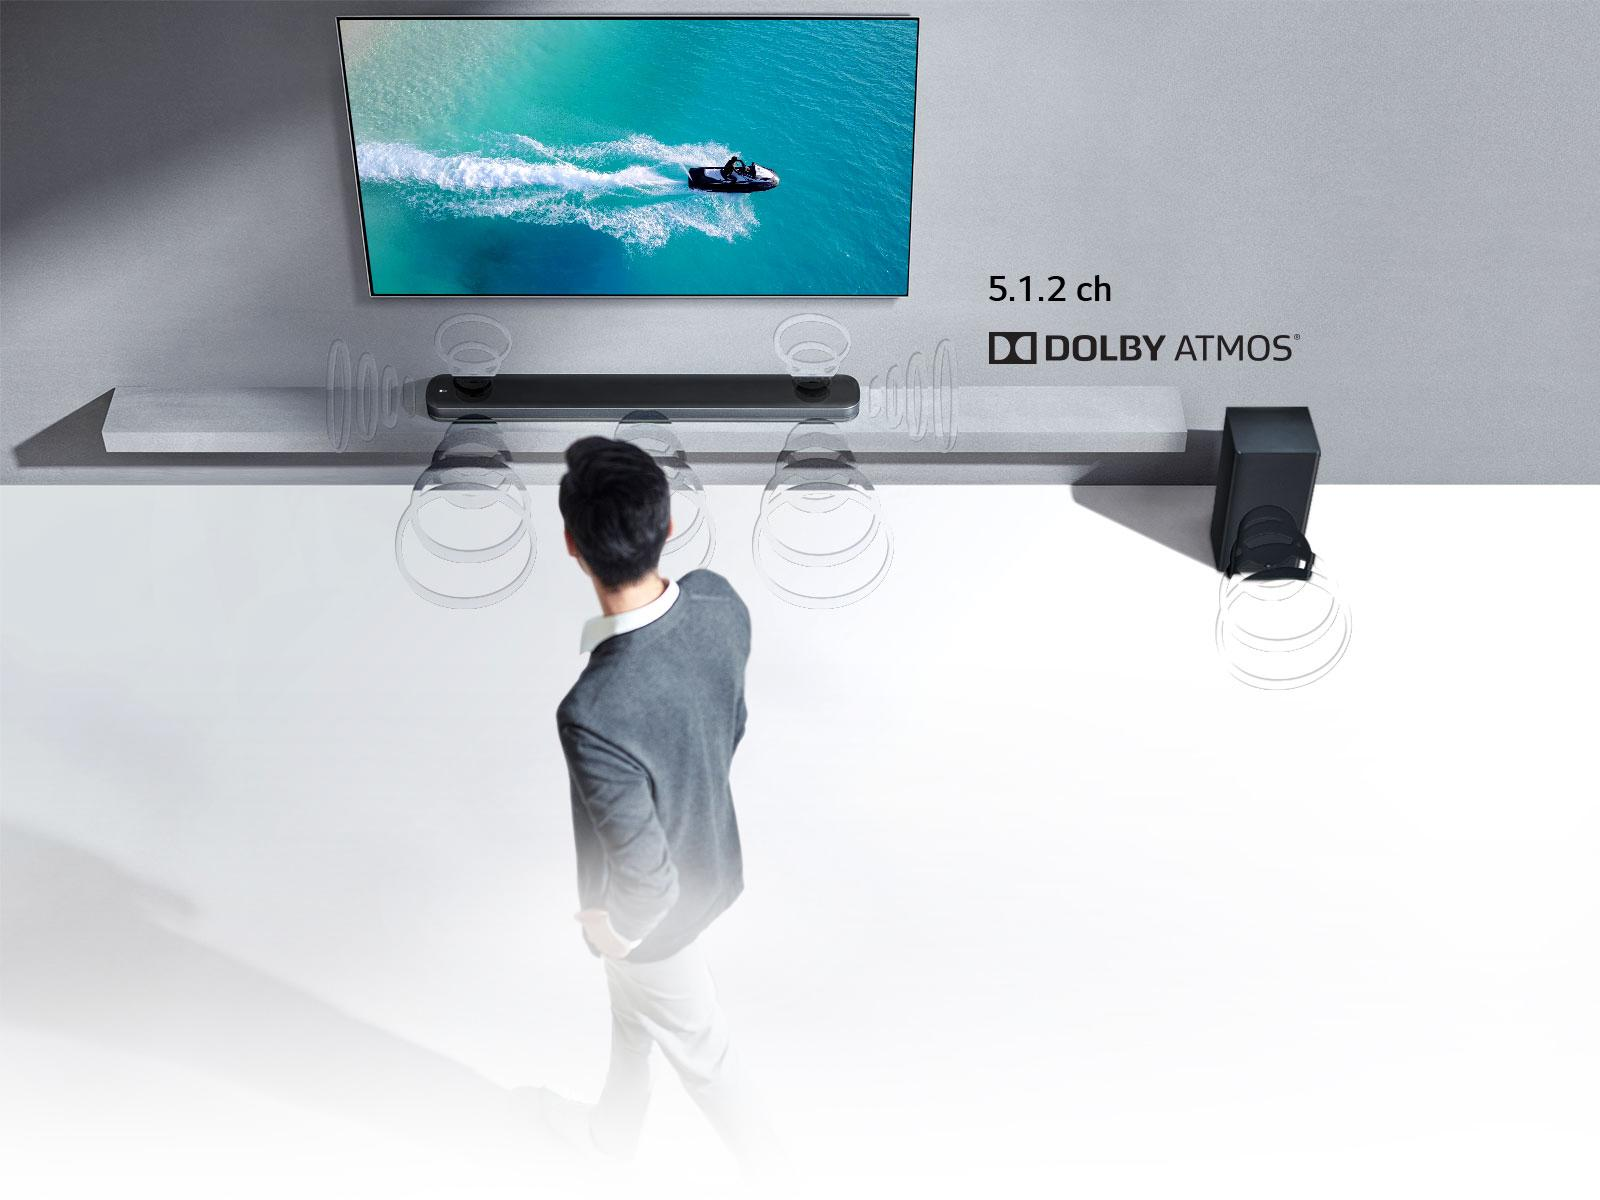 LG SK9Y 5 1 2 Channel High Resolution Audio Sound Bar with Dolby Atmos